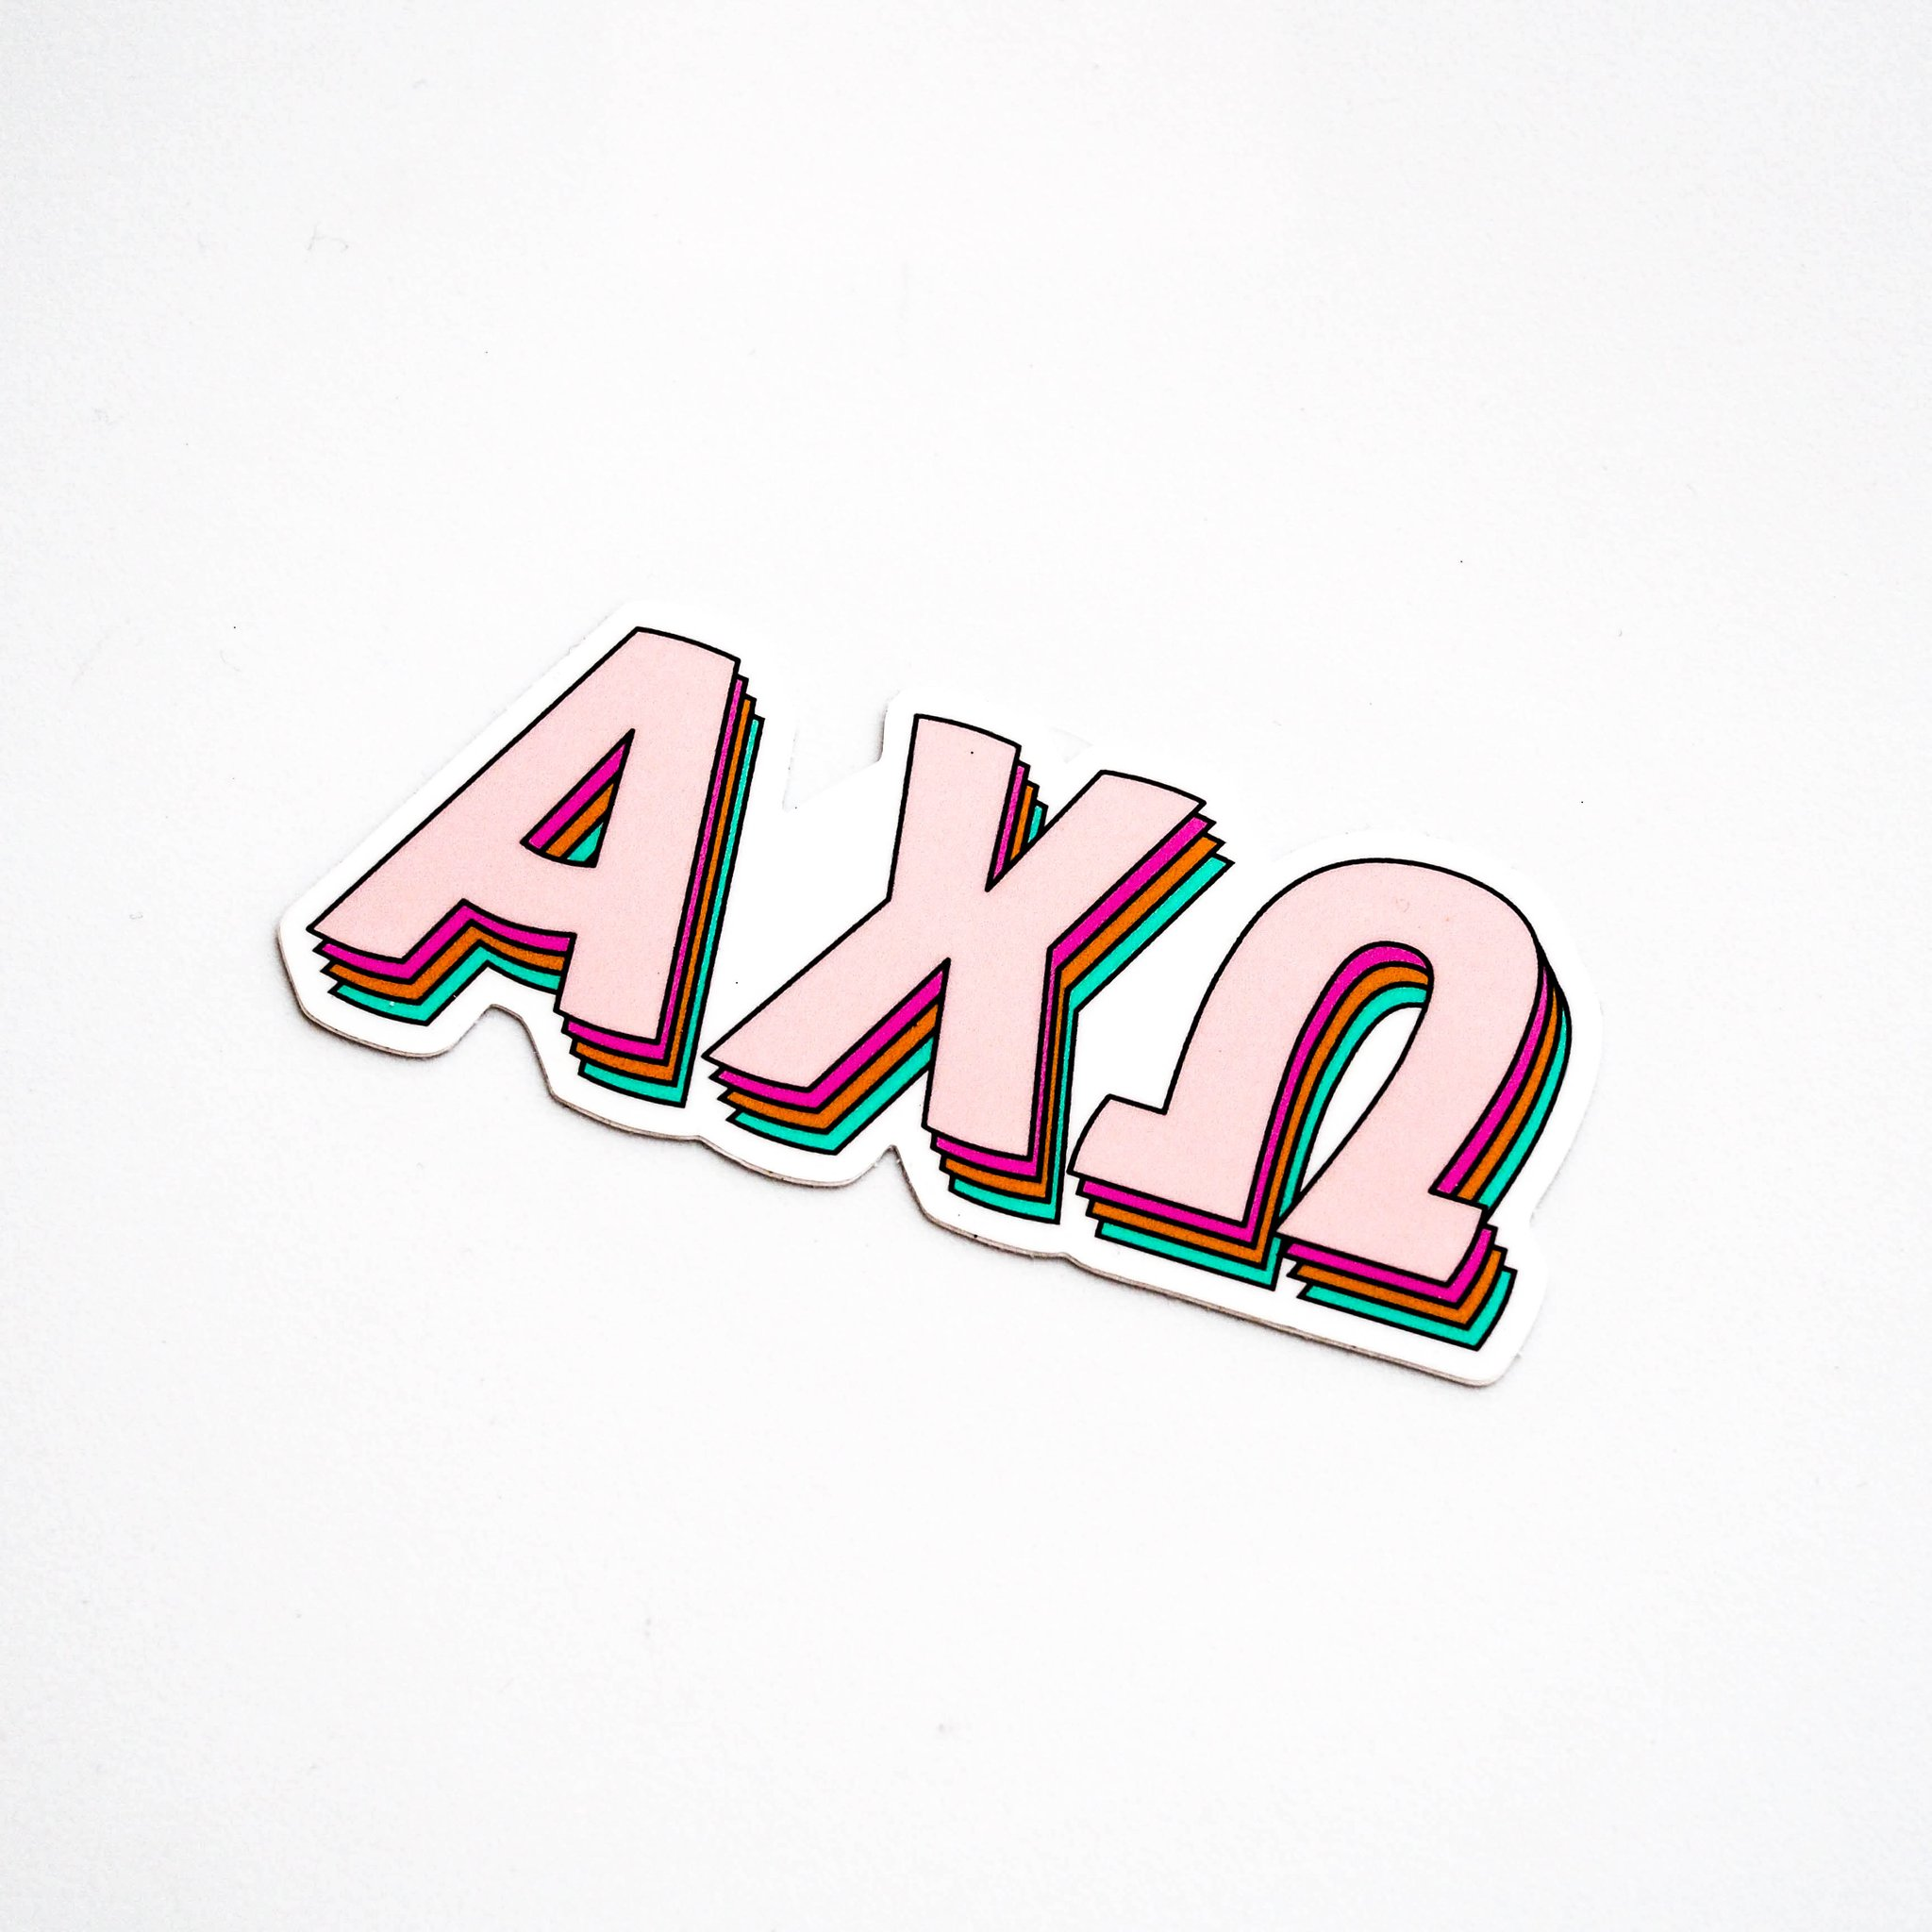 Alpha chi omega clipart clipart free Alpha Chi Omega Stickers clipart free